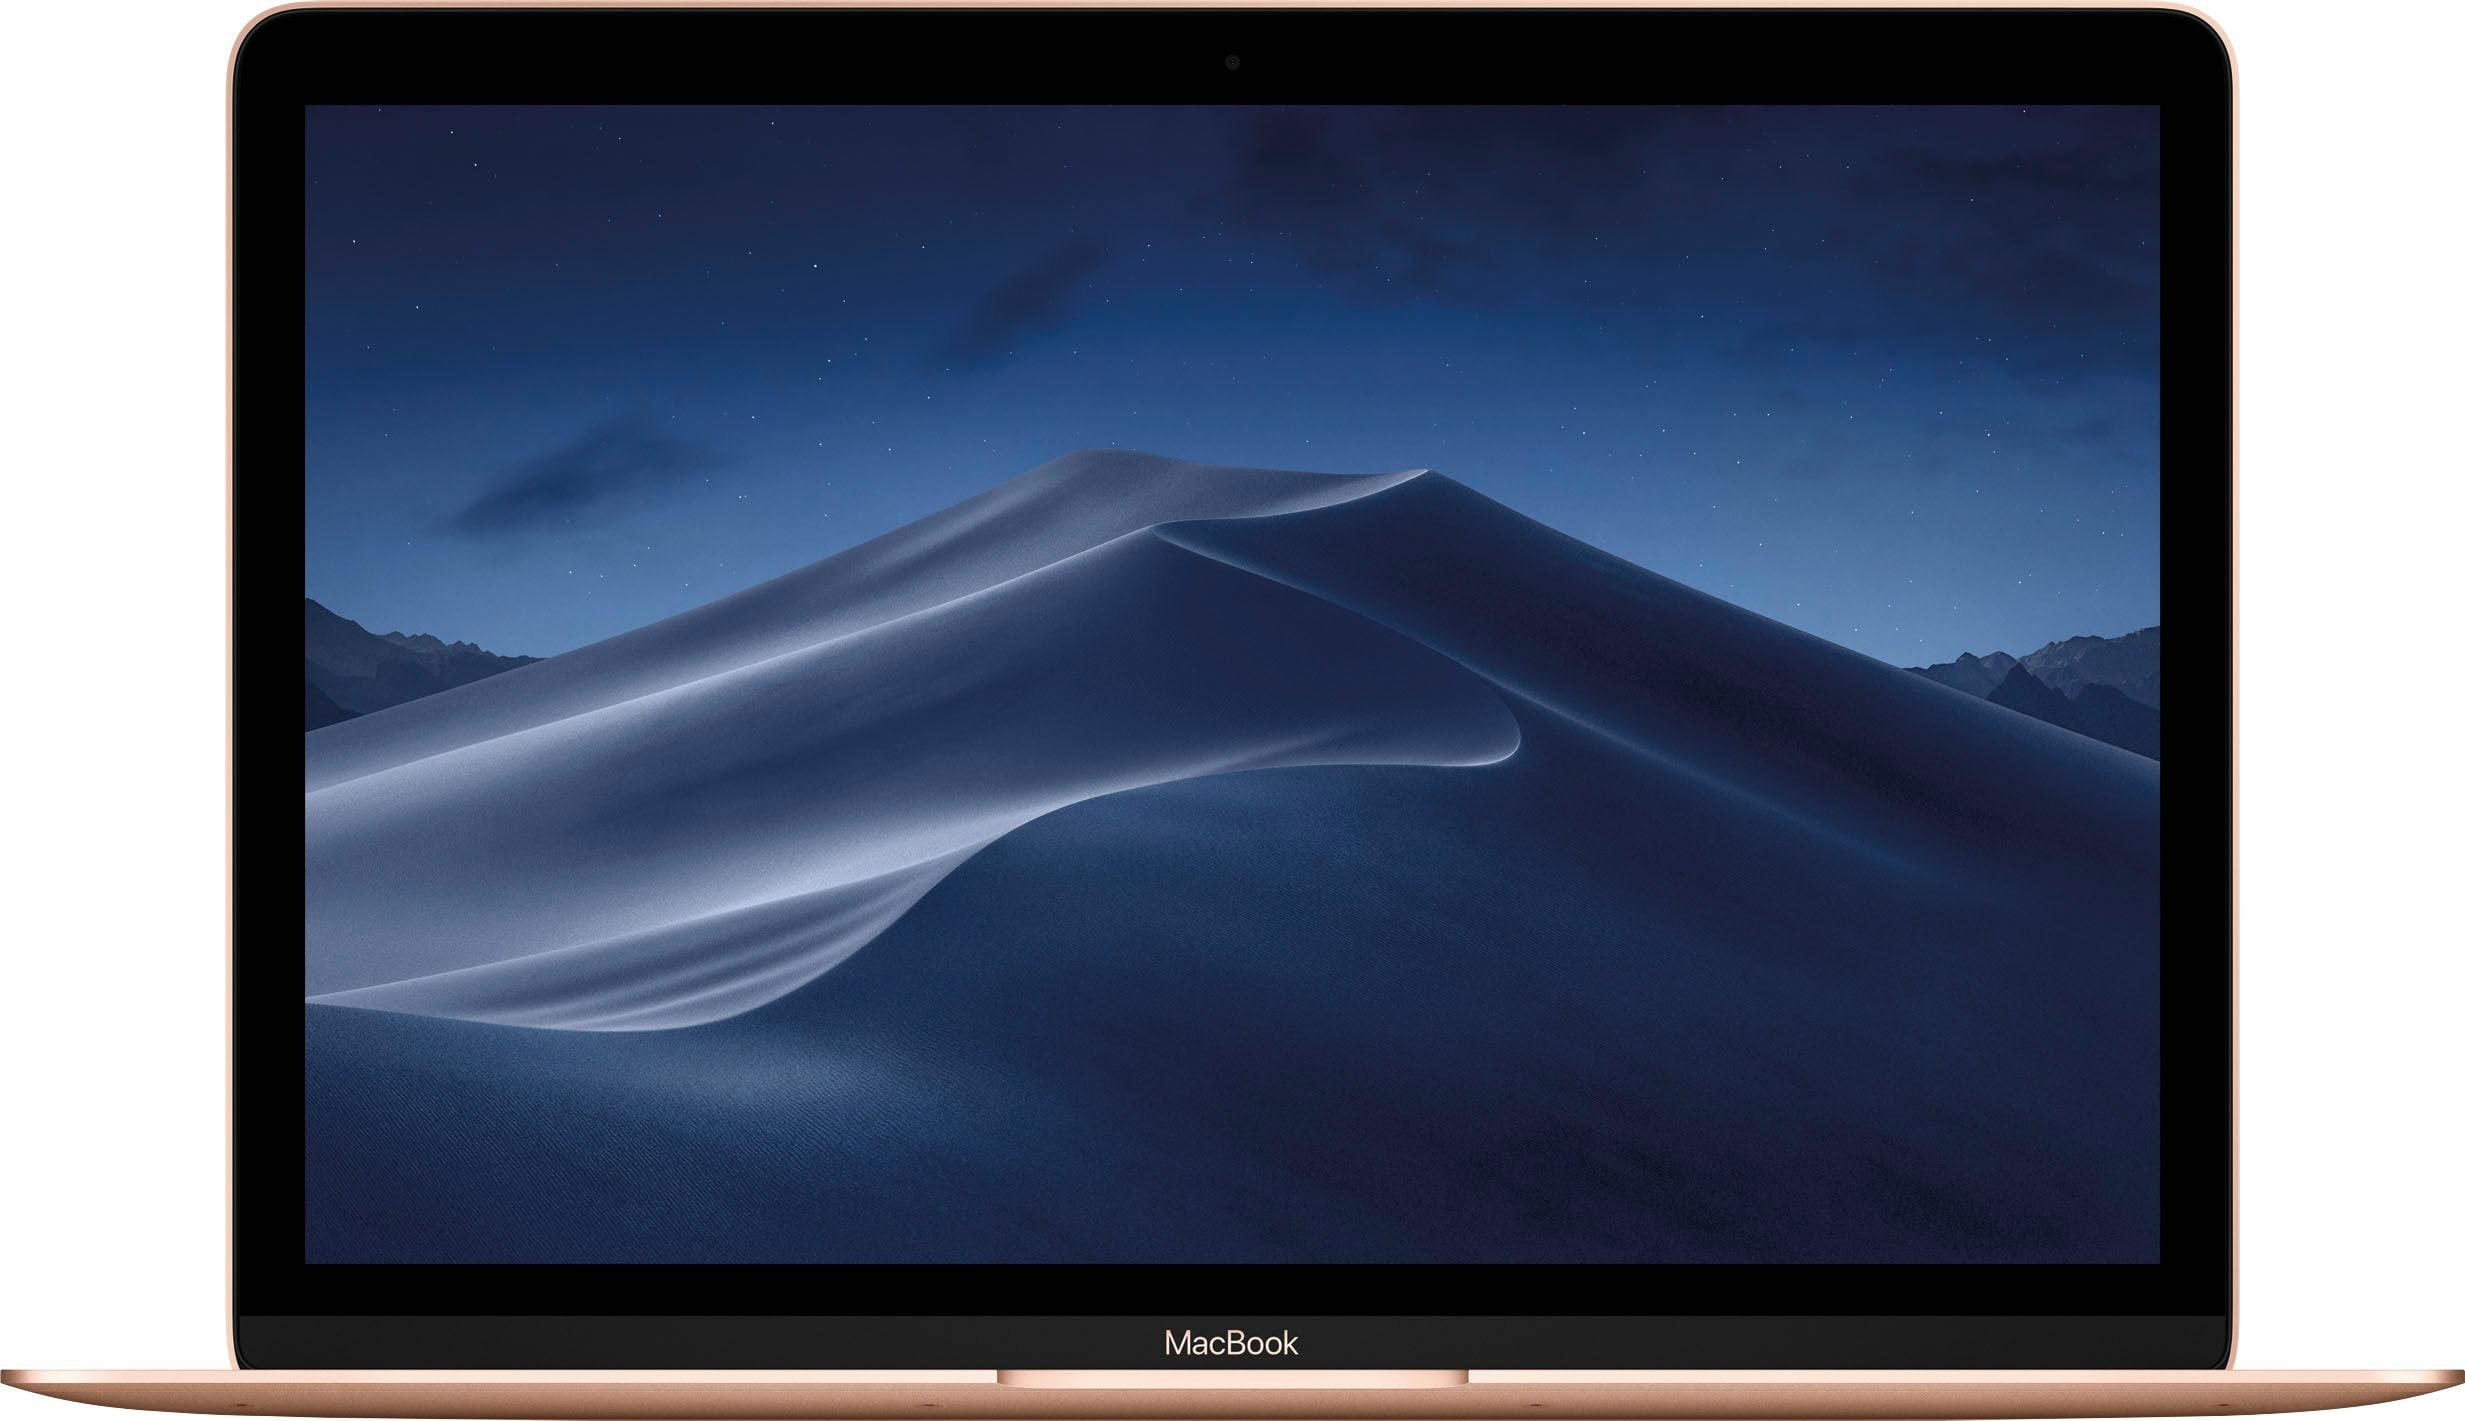 Apple MacBook 12´´ Notebook (30,5 cm / 12 Zoll, Intel, Core i5, 512 GB SSD)